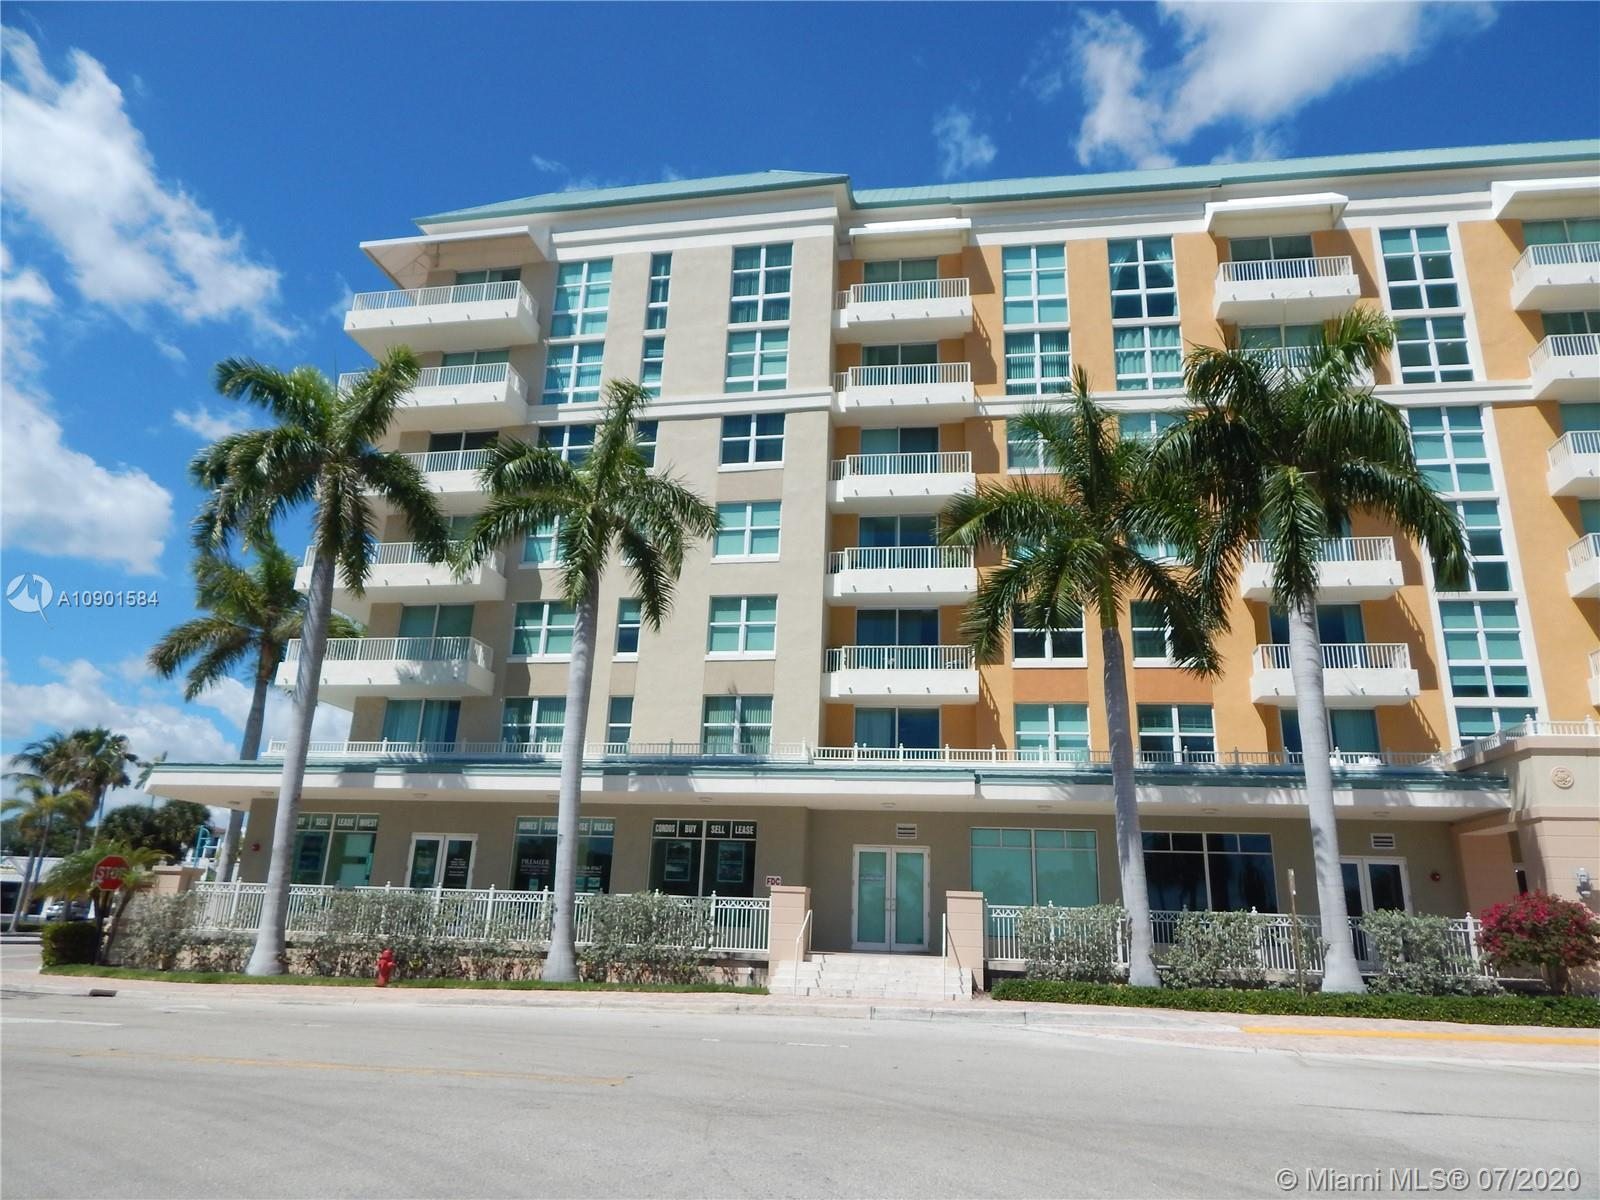 REMODELED CONDO, NEW KITCHEN, NEW BATHROOM, WOOD FLOORS, OPEN BALCONY WITH VIEW TO THE INTRACOSTAL,